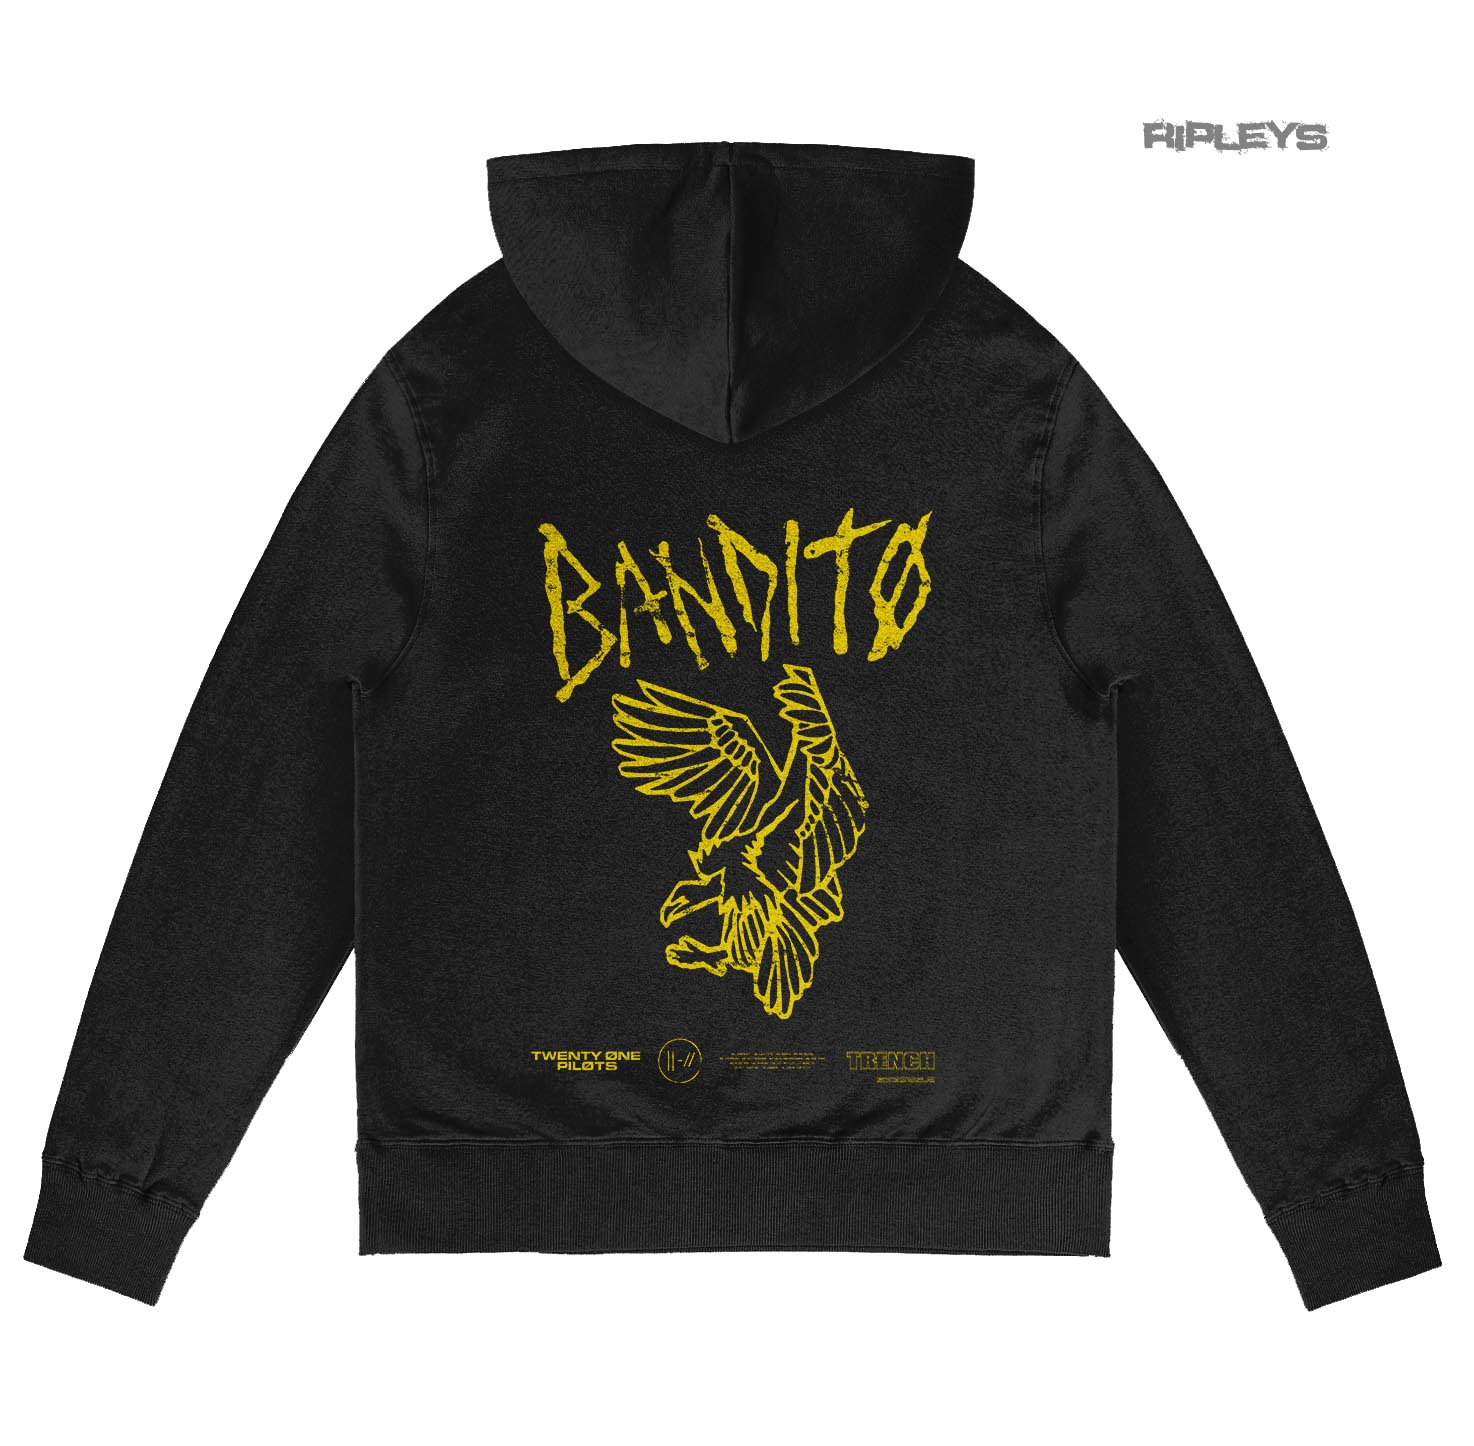 Official Twenty one 21 Pilots Black Hoody Hoodie Pullover FLYER Bandito TRENCH